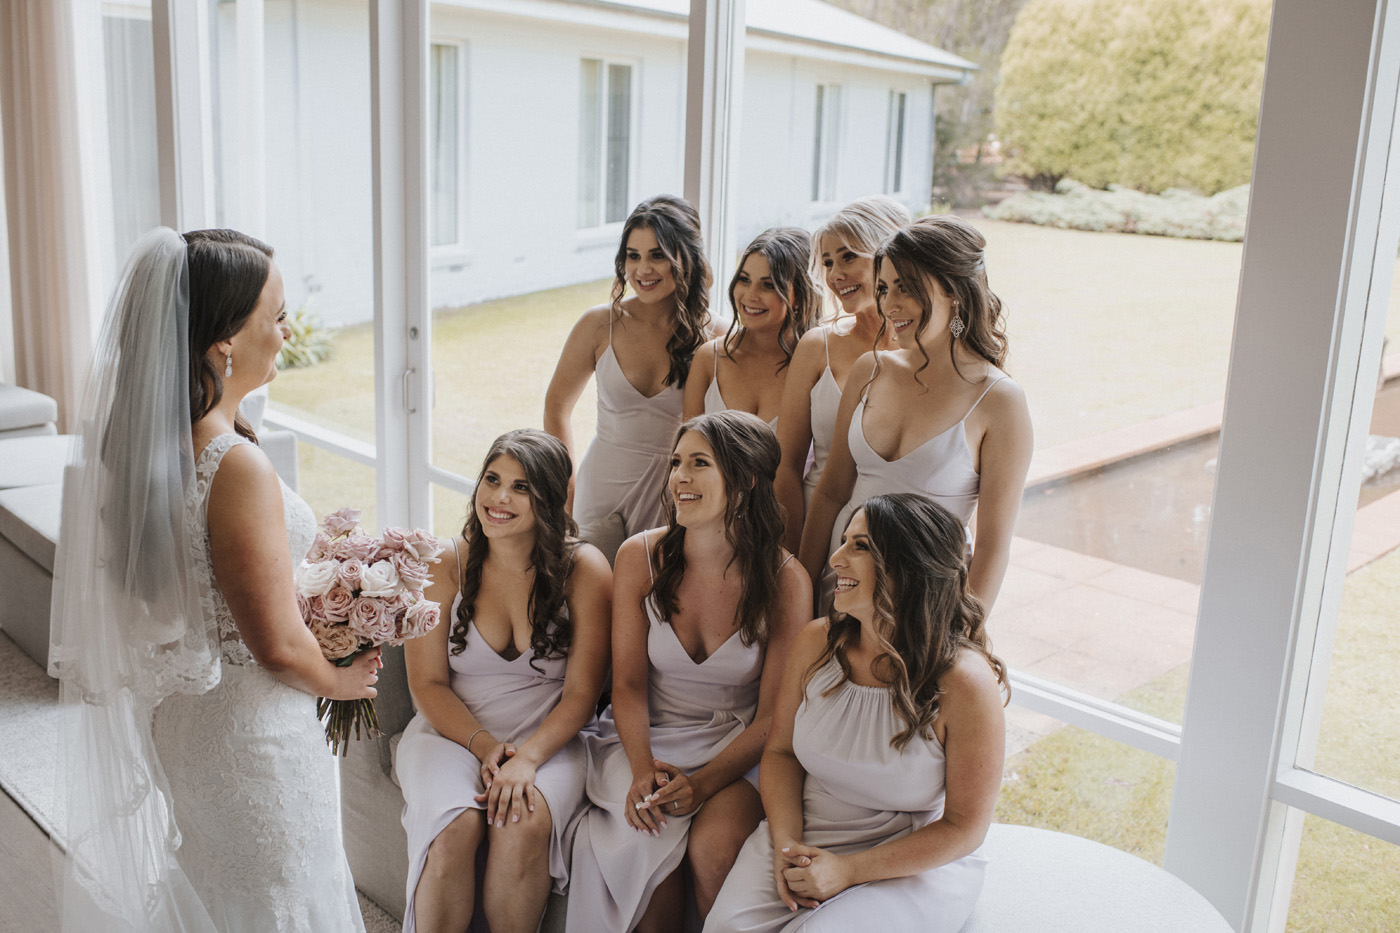 Real Bride - Amy + Jarred | Real Wedding Melbourne Mornington Penisula |  Scarlett by Raffaele Ciuca